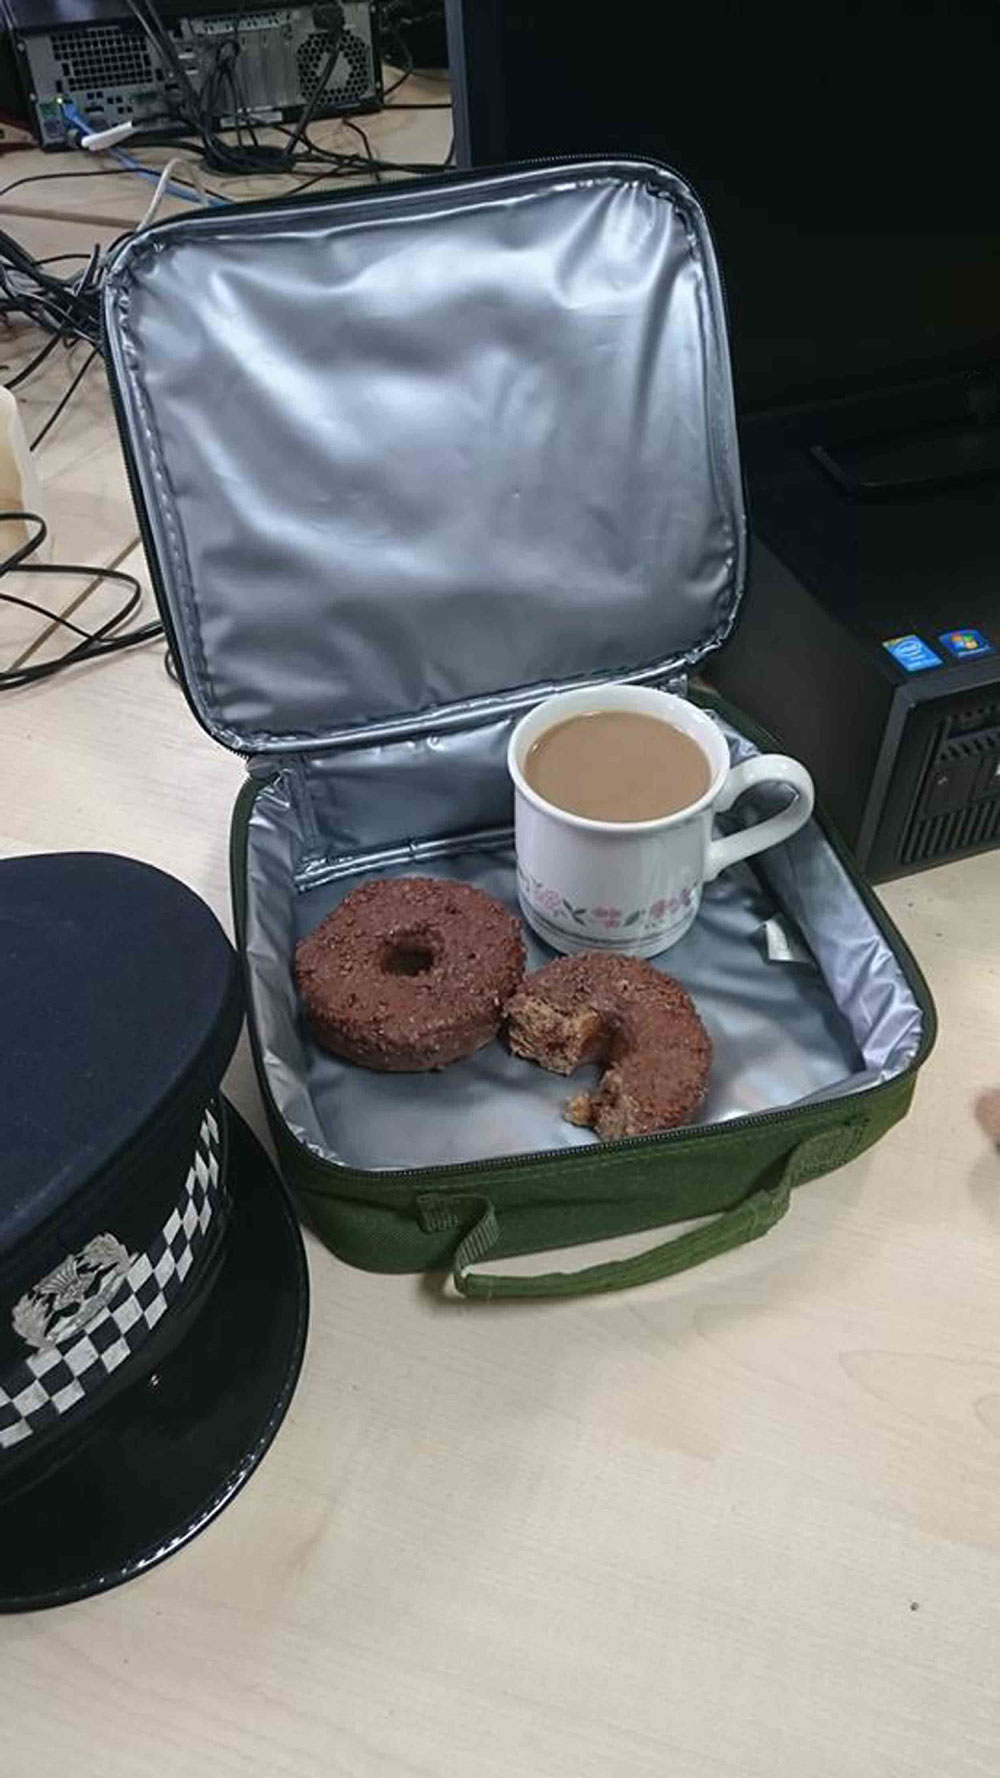 The police shared this hilarious snap online